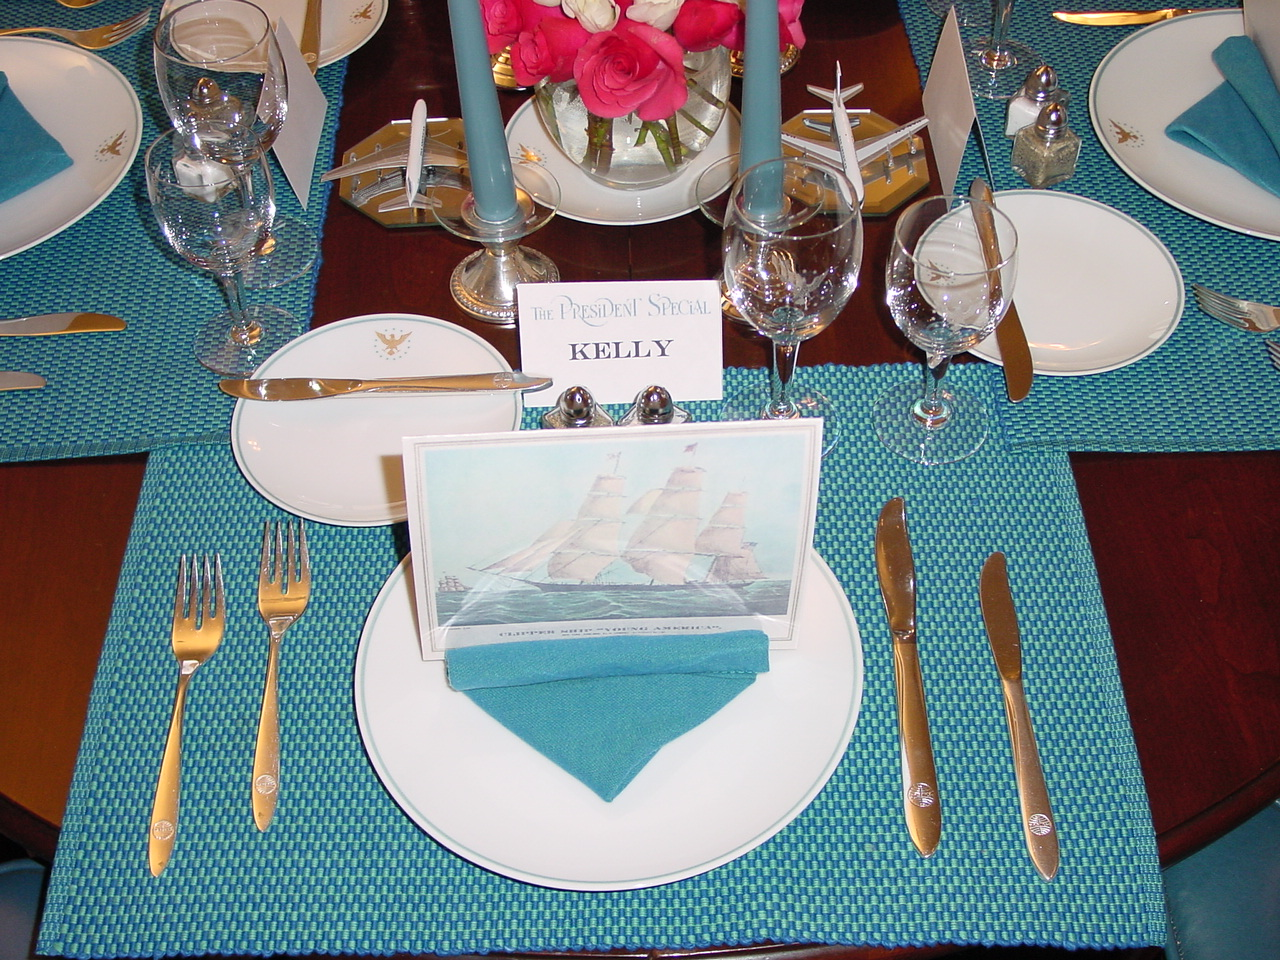 Reproduced 1960s menus with the meal of the evening printed inside lend a bit of authenticity to the 1960s Pan Am 'President' table setting.